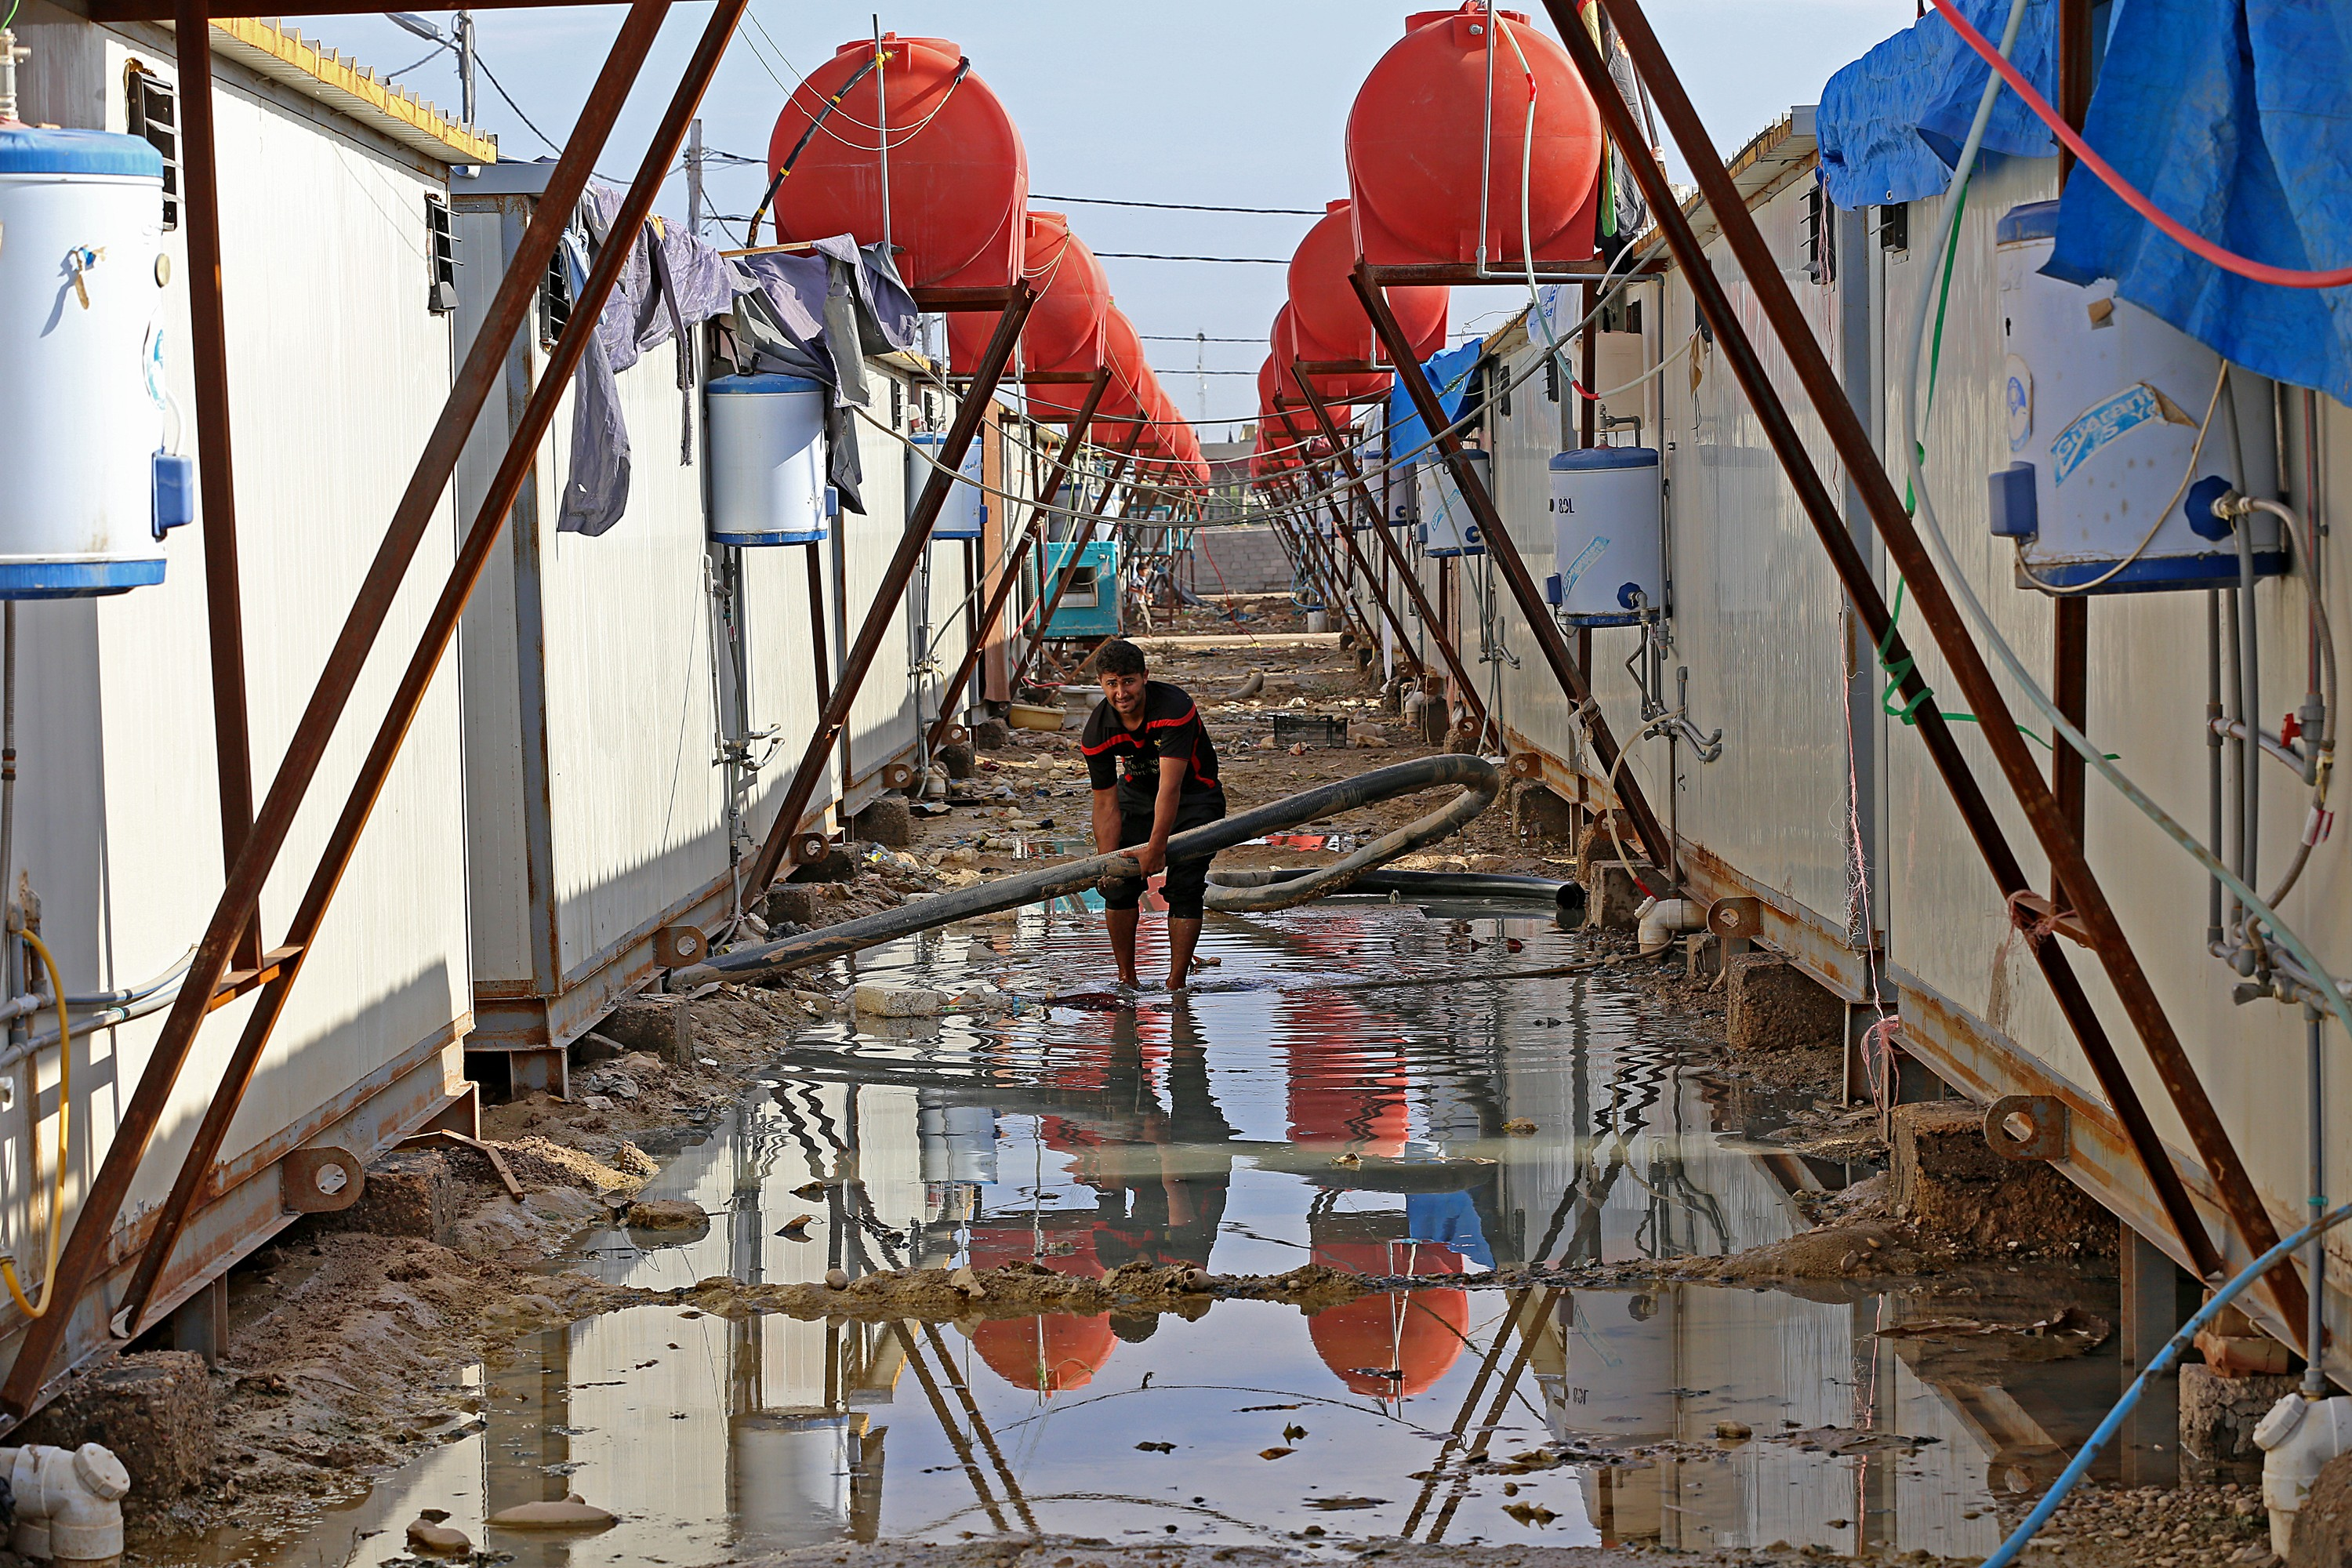 On 04 November a man fixes water pipes while standing in floodwater behind a set of shelters in Nabi Younis IDP camp in Nahrawan, a suburb of Baghdad. Heavy rain in Iraq in late October inundated several areas of the country considered vulnerable to the s